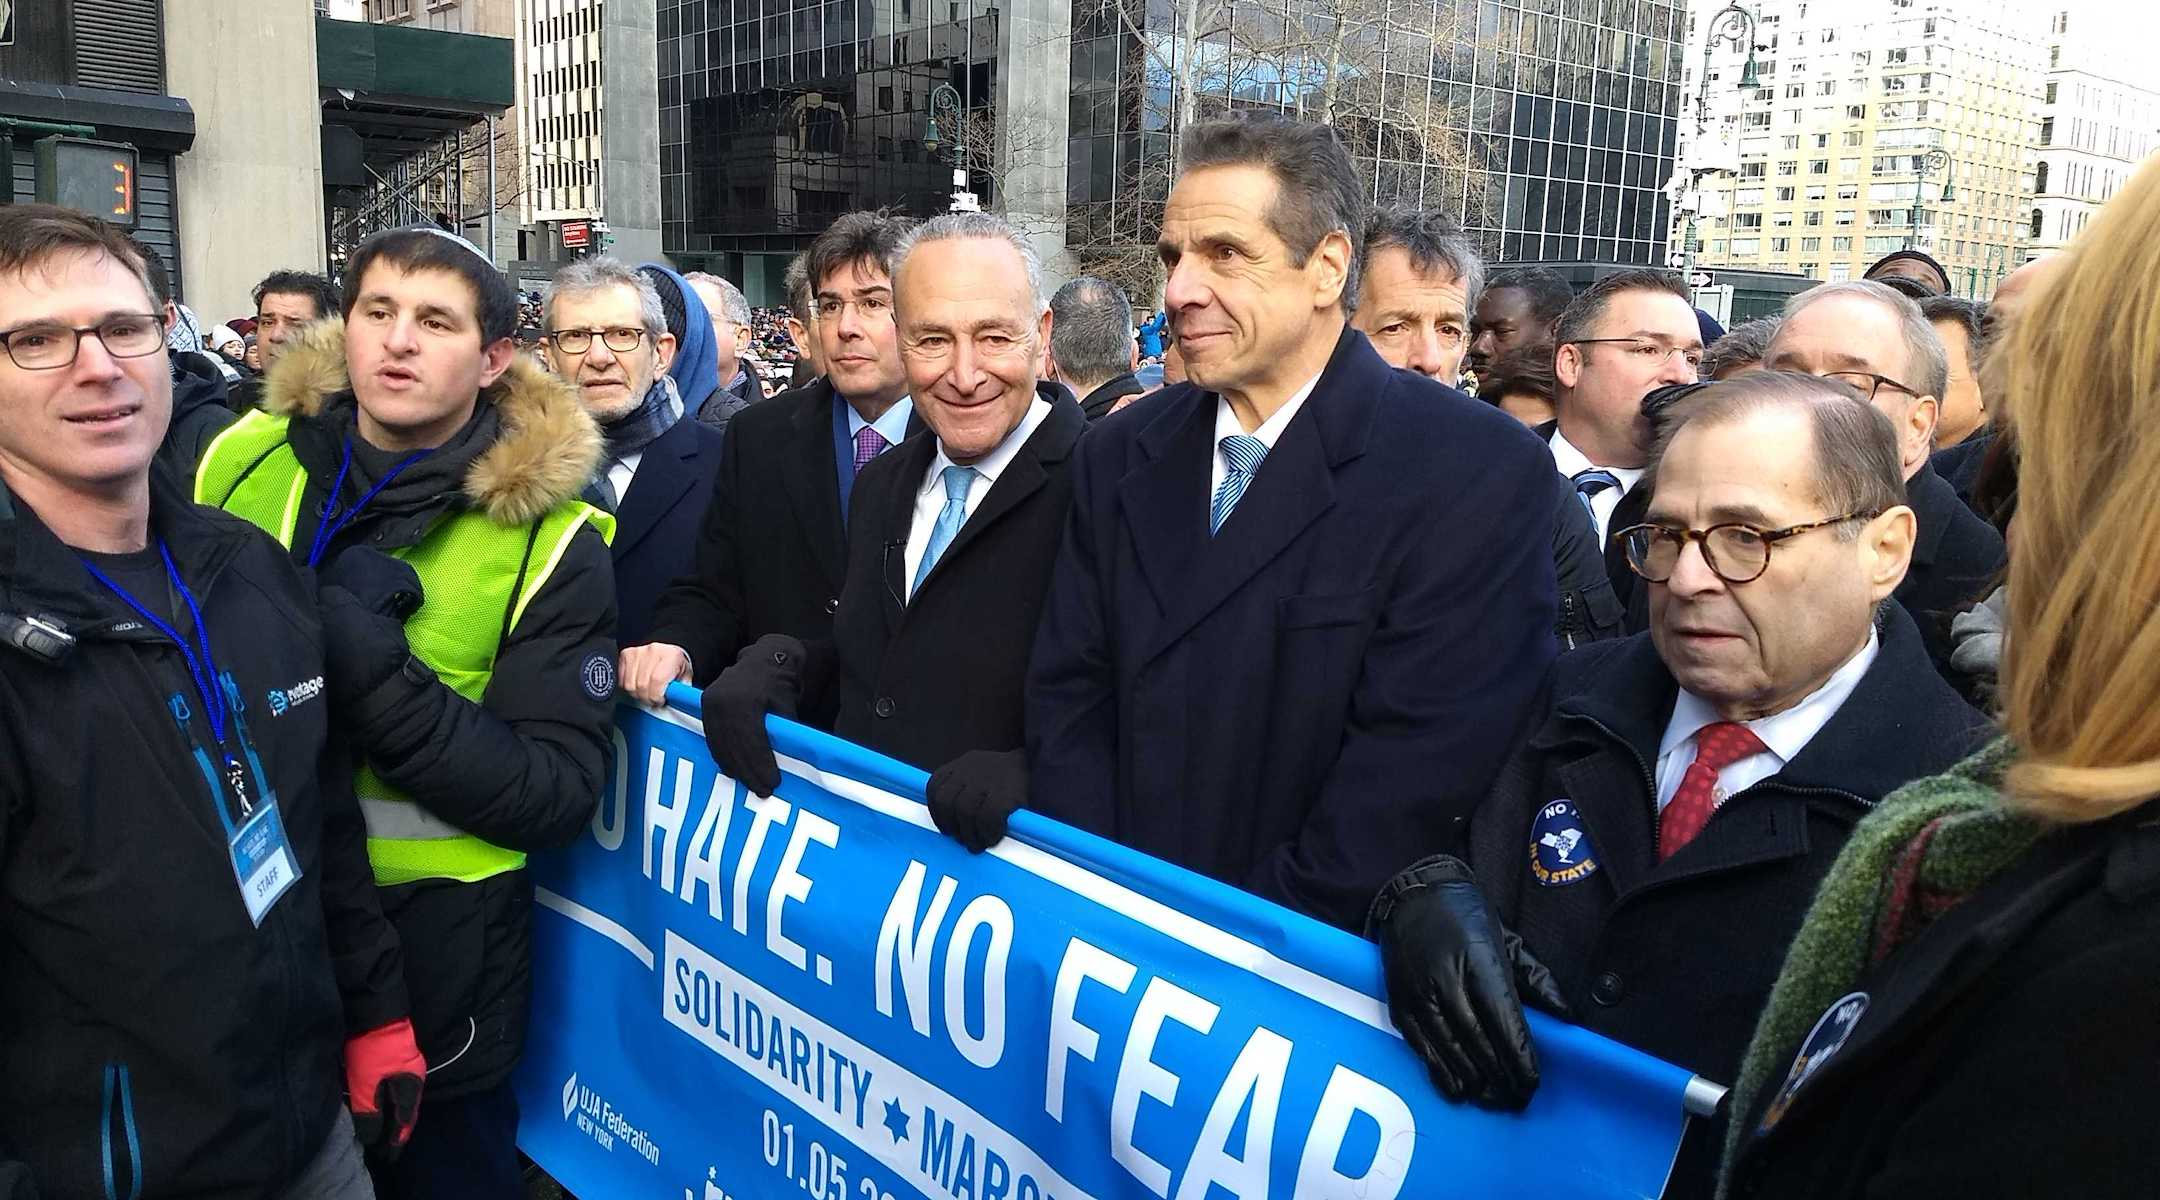 From right: Rep. Jerrold Nadler, Gov. Andrew Cuomo, Sen. Chuck Schumer, UJA-Federation CEO Eric Goldstein and Jewish Community Relations Council CEO Michael Miller kick off the march against anti-Semitism in New York City on January 5. (Ben Sales)